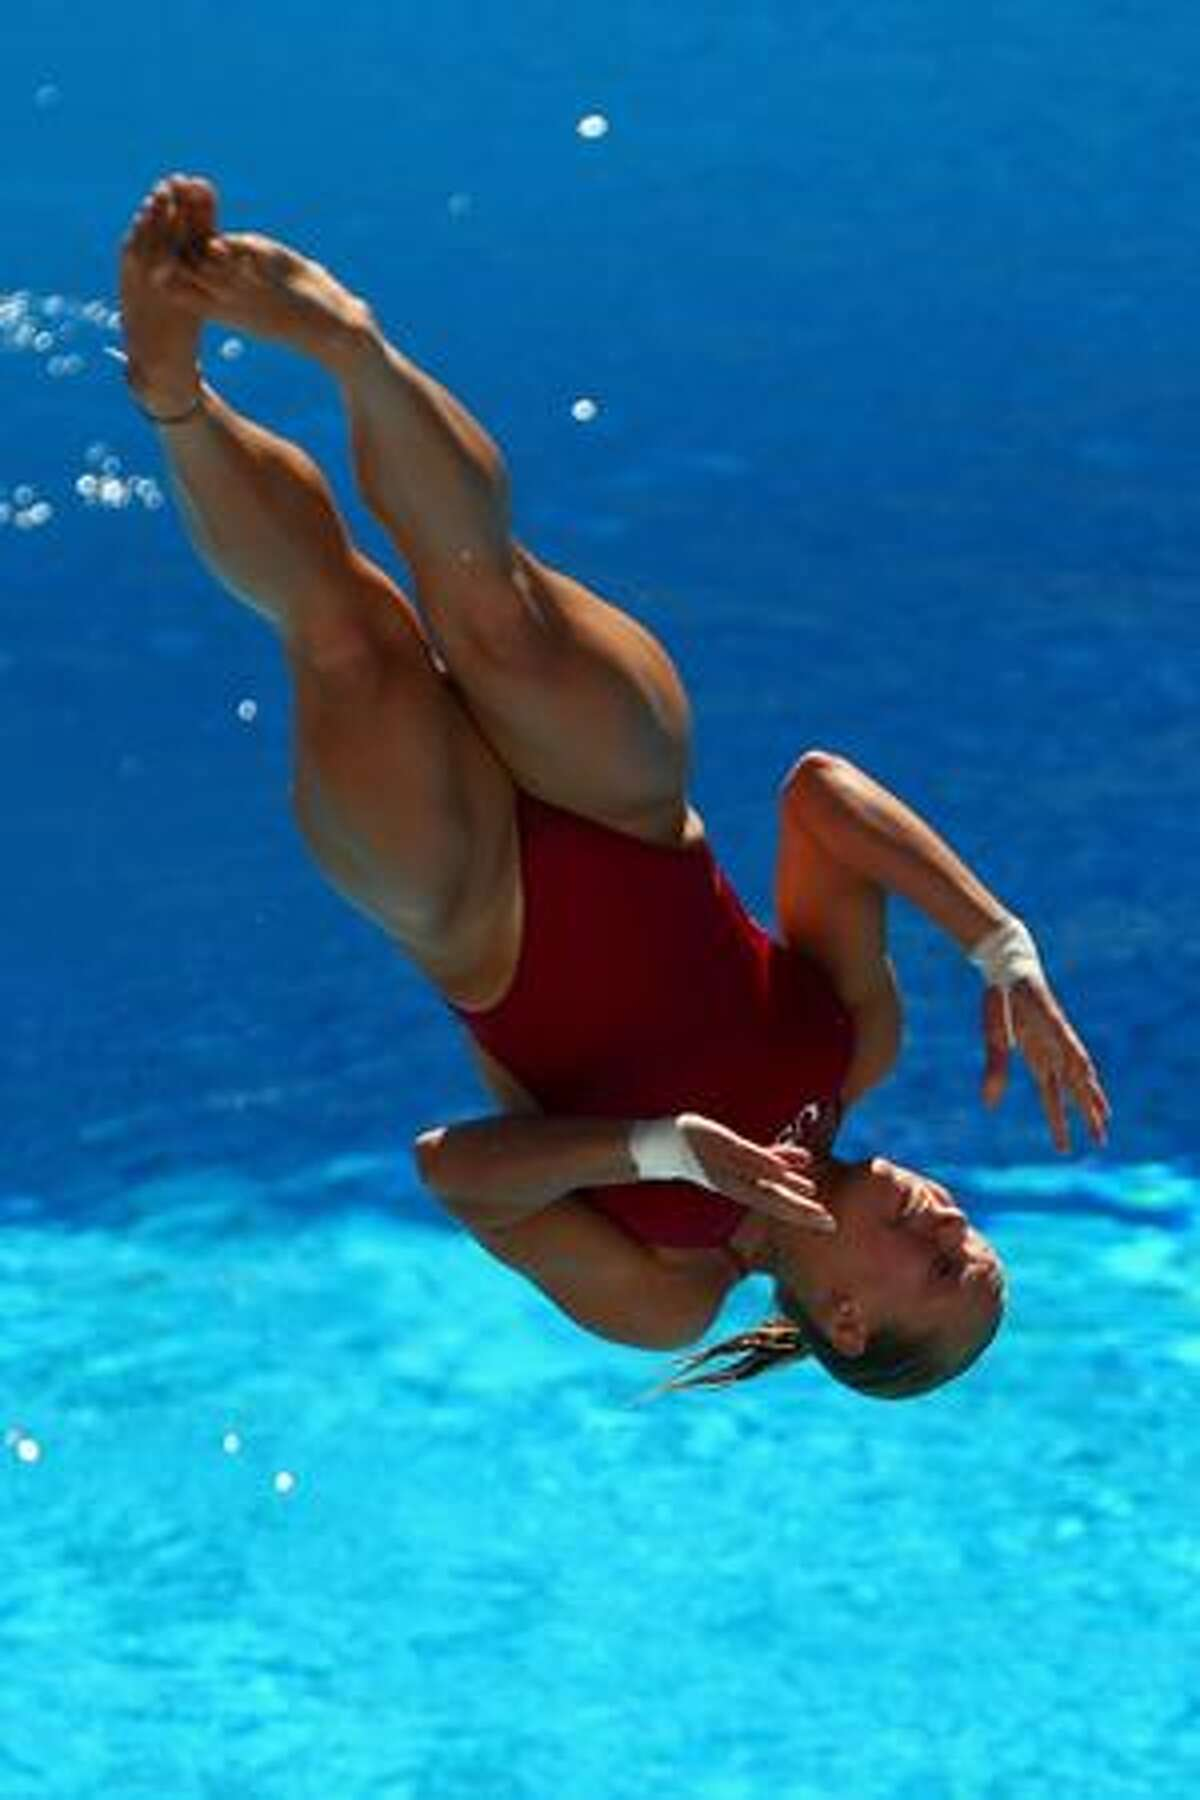 Brittany Viola of United States competes in the 1m Womens Springboard Diving at the Stadio del Nuoto on Sunday in Rome, Italy.